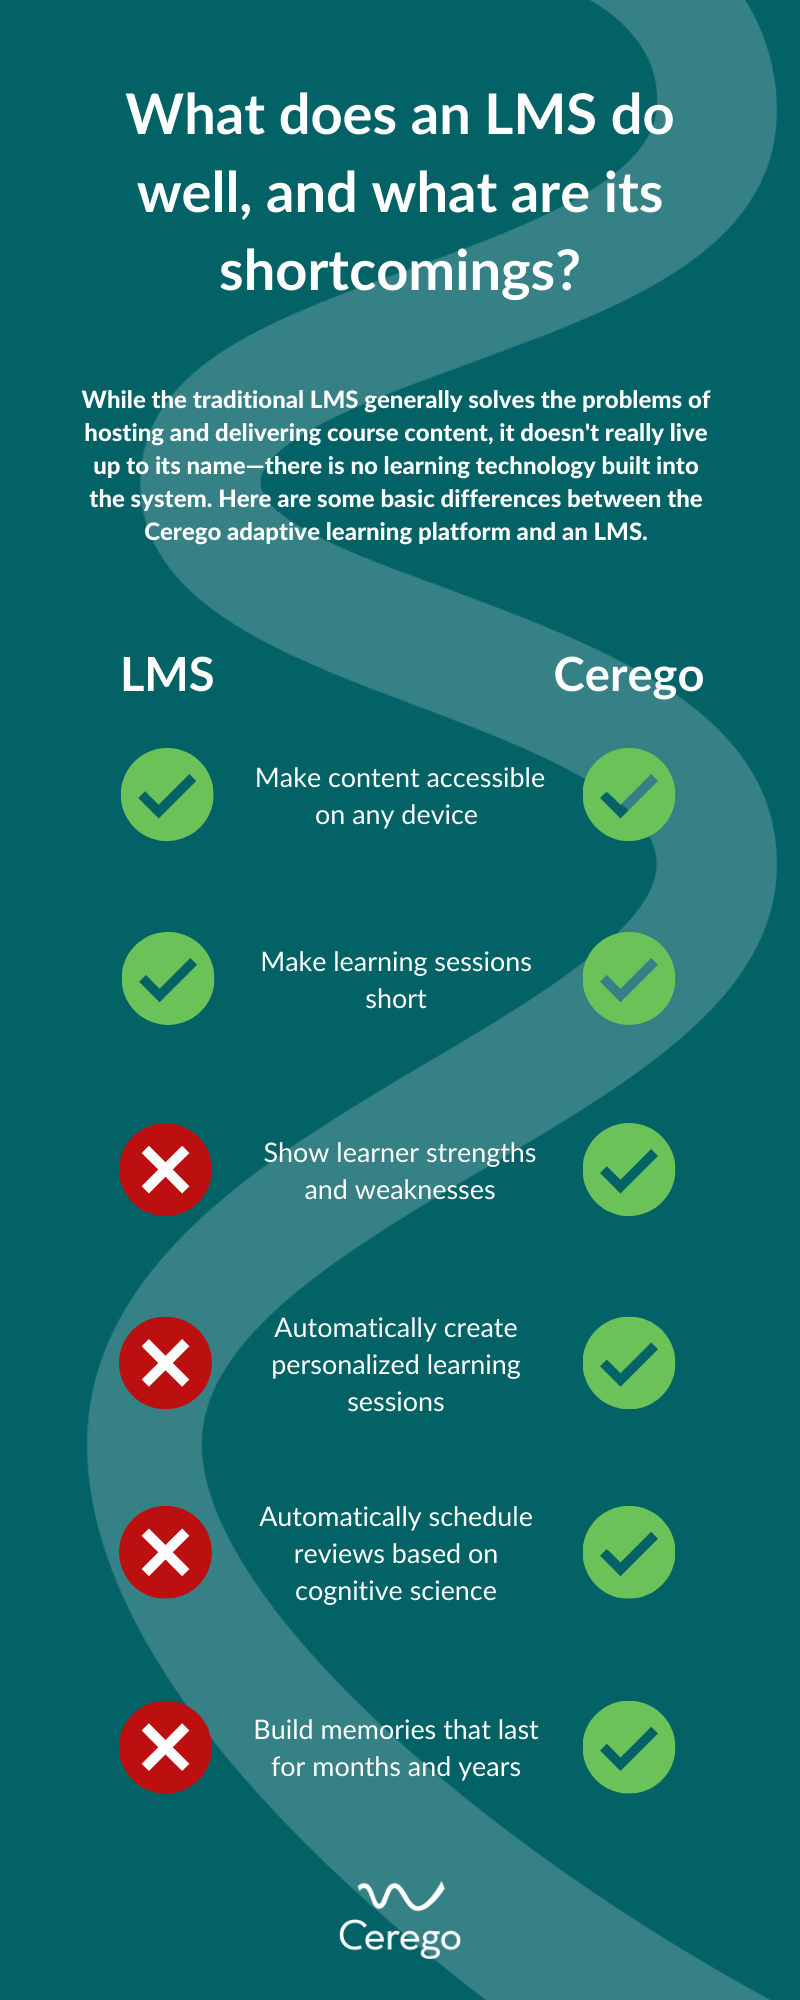 What does an LMS do well, and what are its shortcomings?